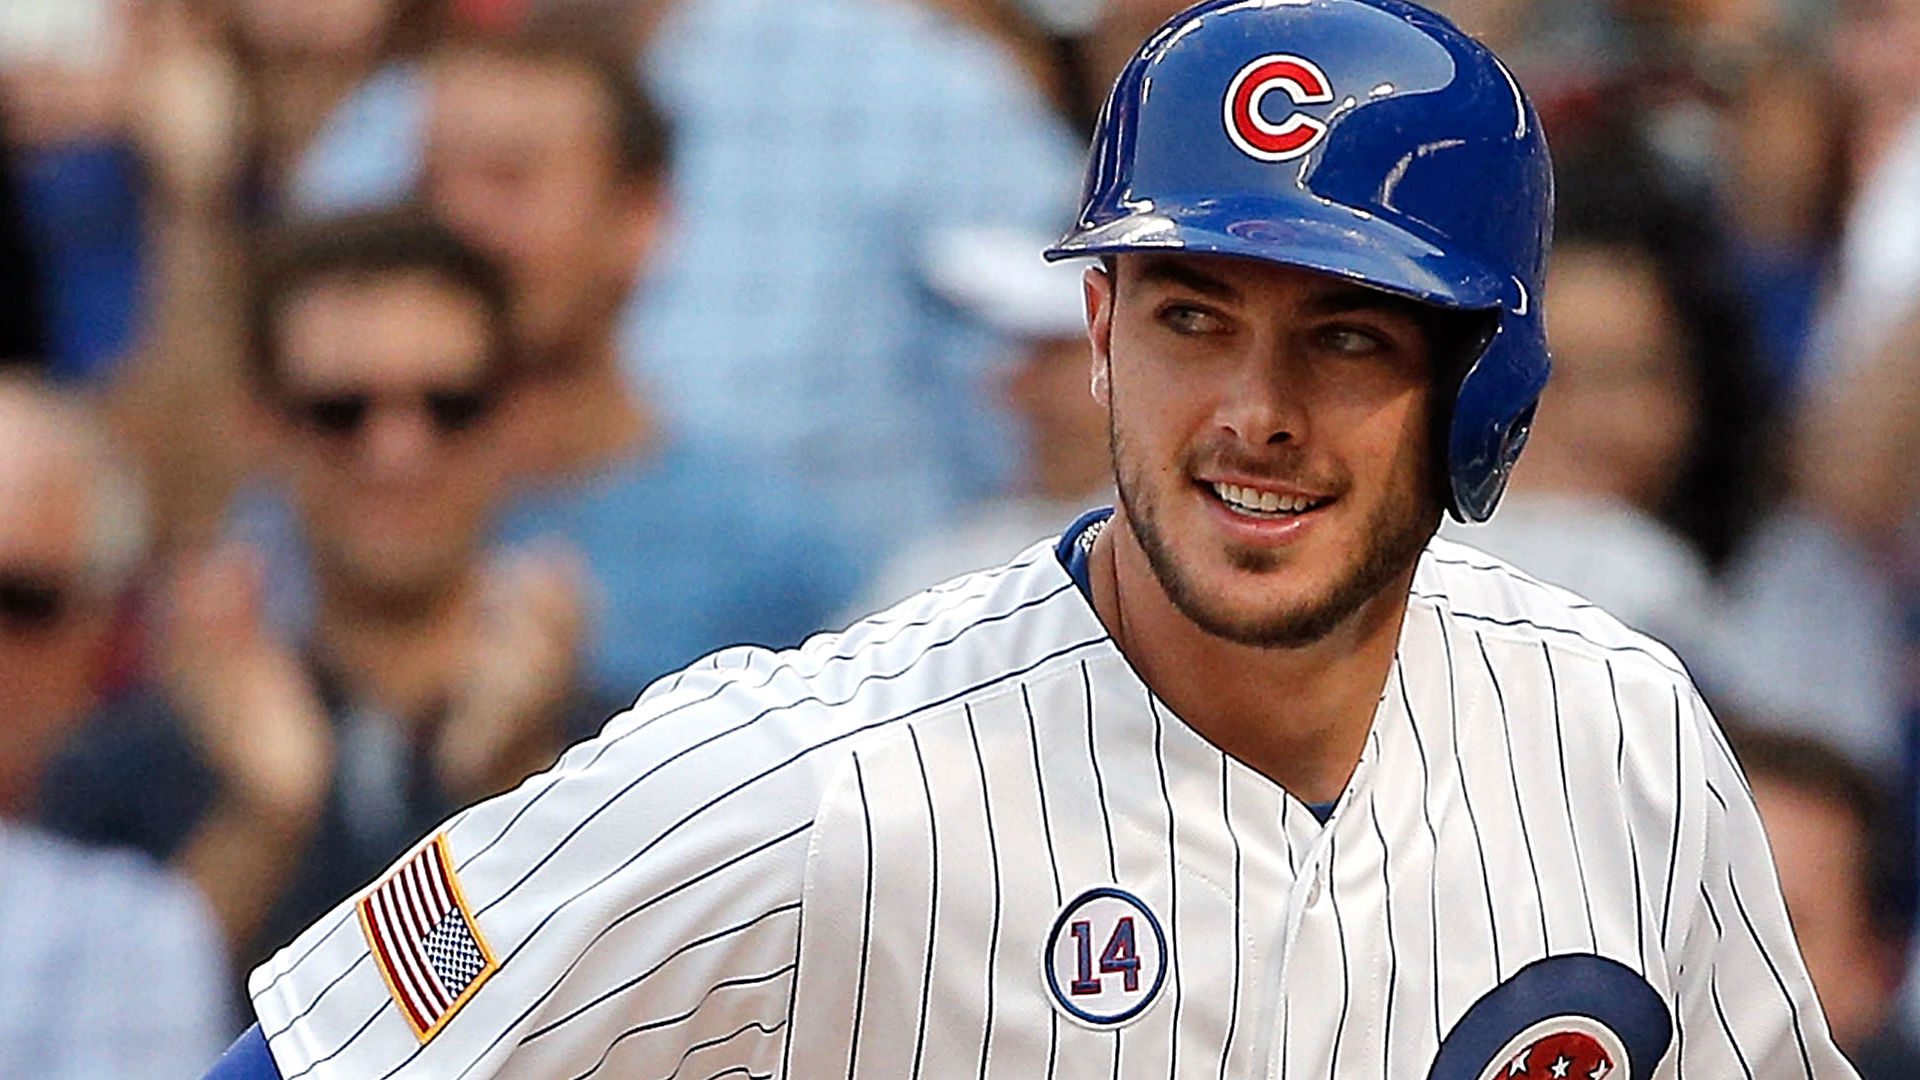 Kris Bryant sets Cubs' rookie RBI record | MLB | Sporting News